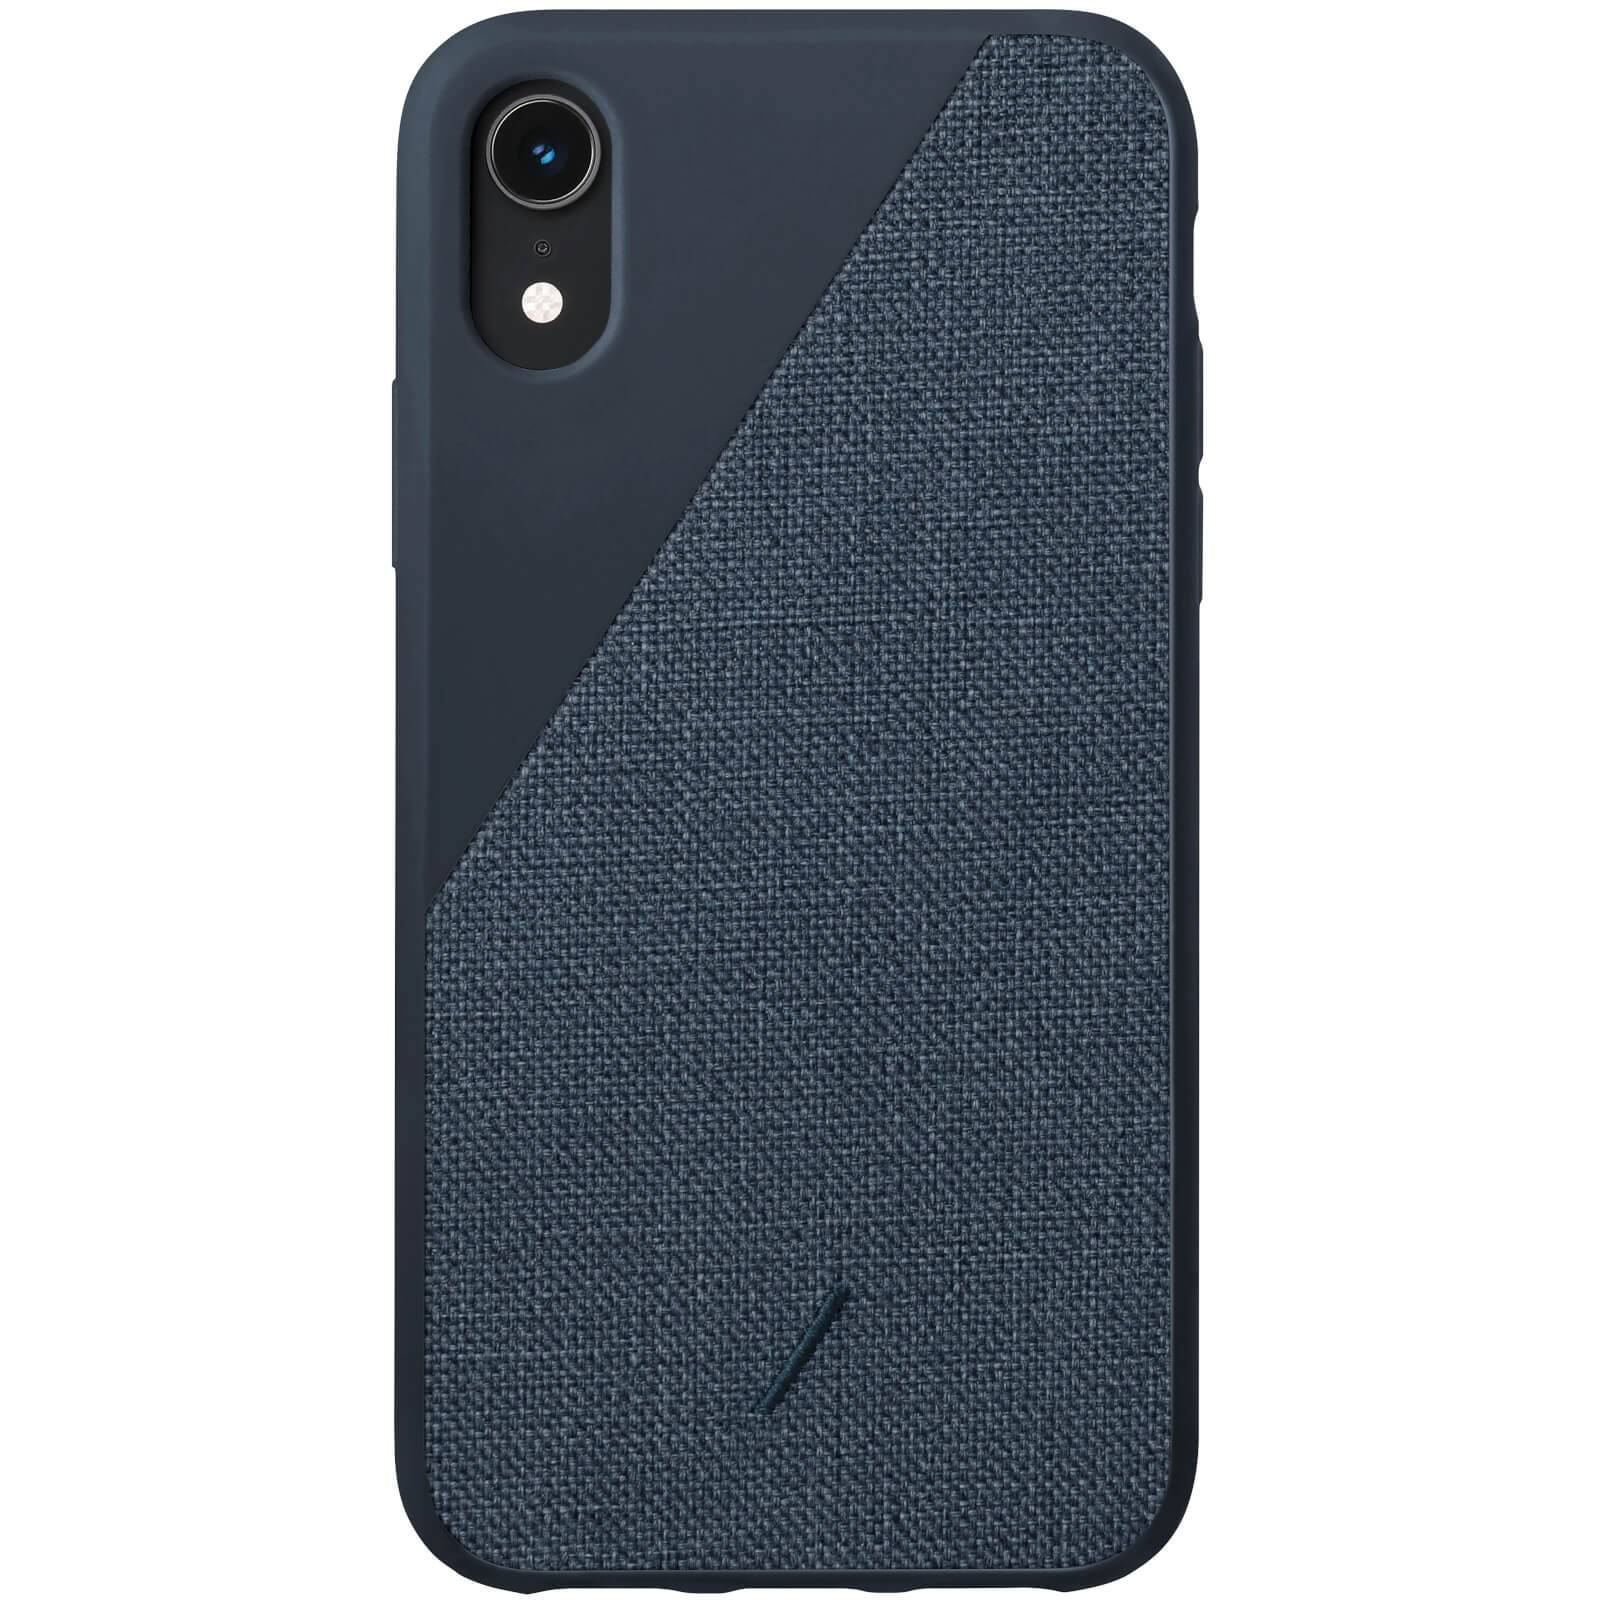 Native Union Clic Canvas iPhone XR Case - Navy